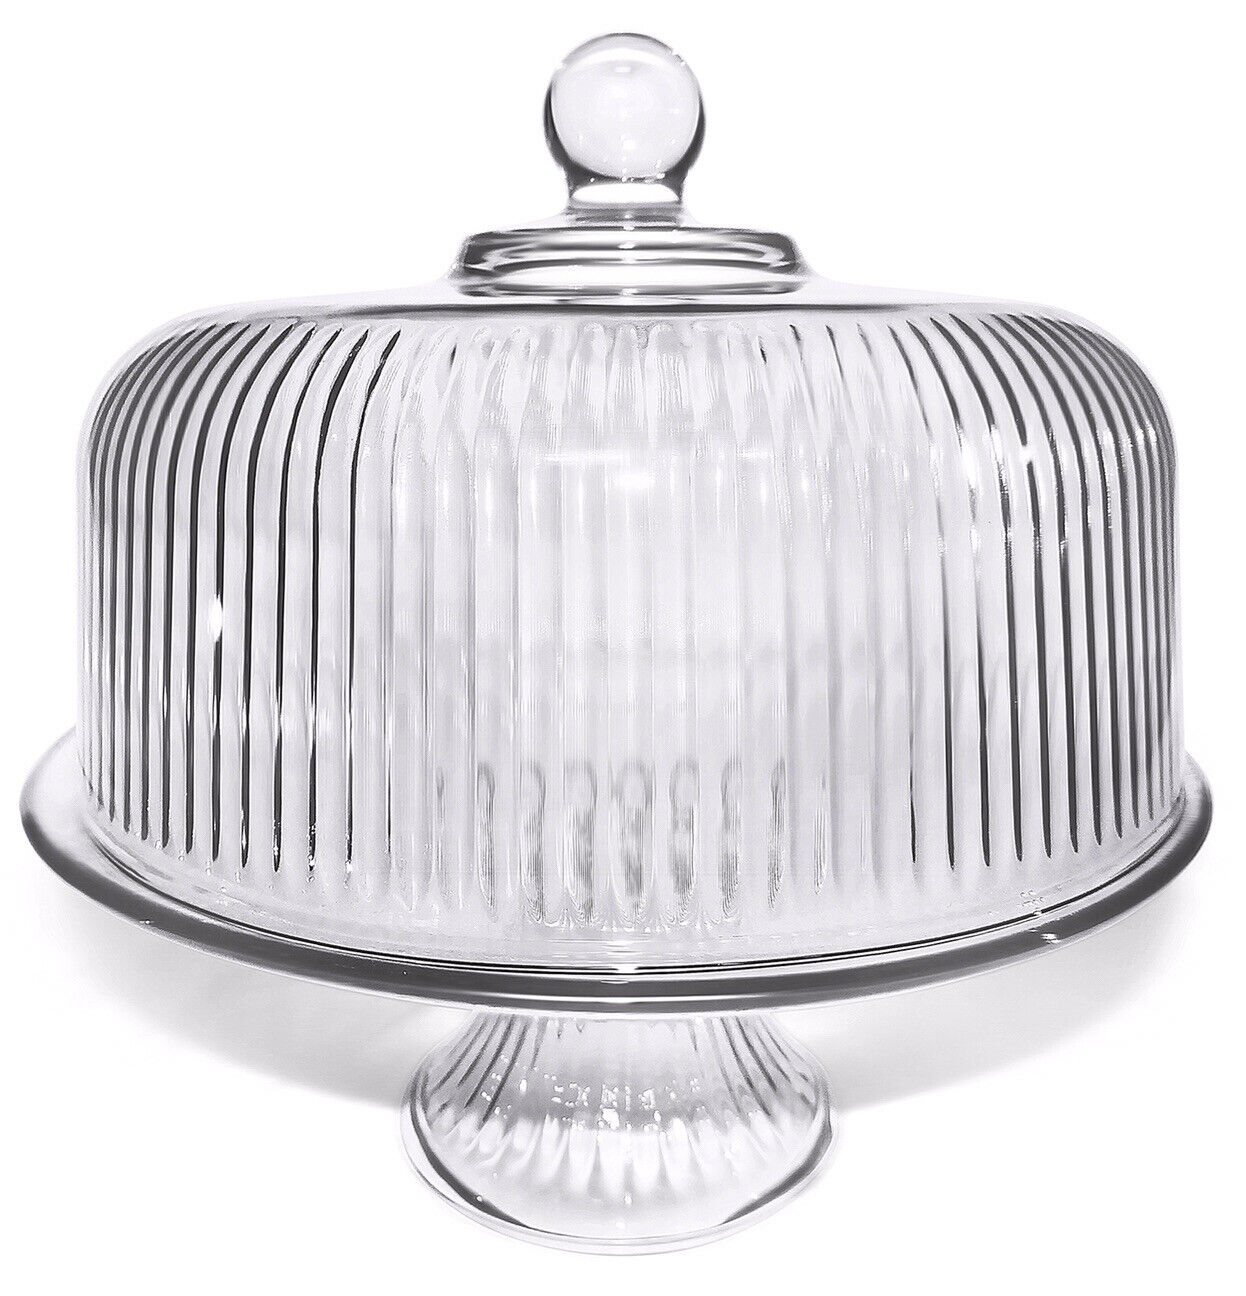 The Toscany Collection Savannah Pedestal Cake Plate With Dome Lid Original Box For Sale Online Ebay